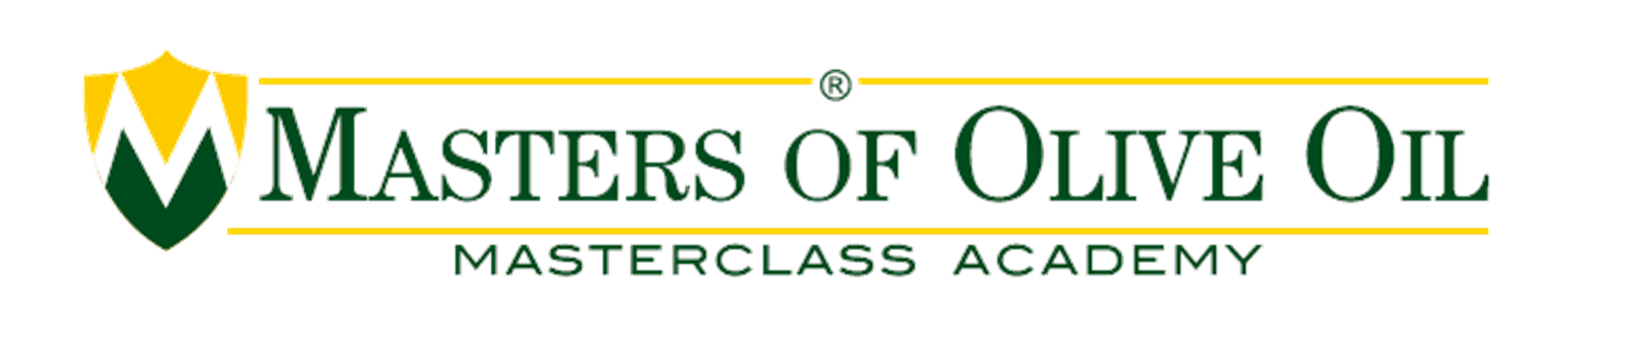 masters of olive oil masterclass academy